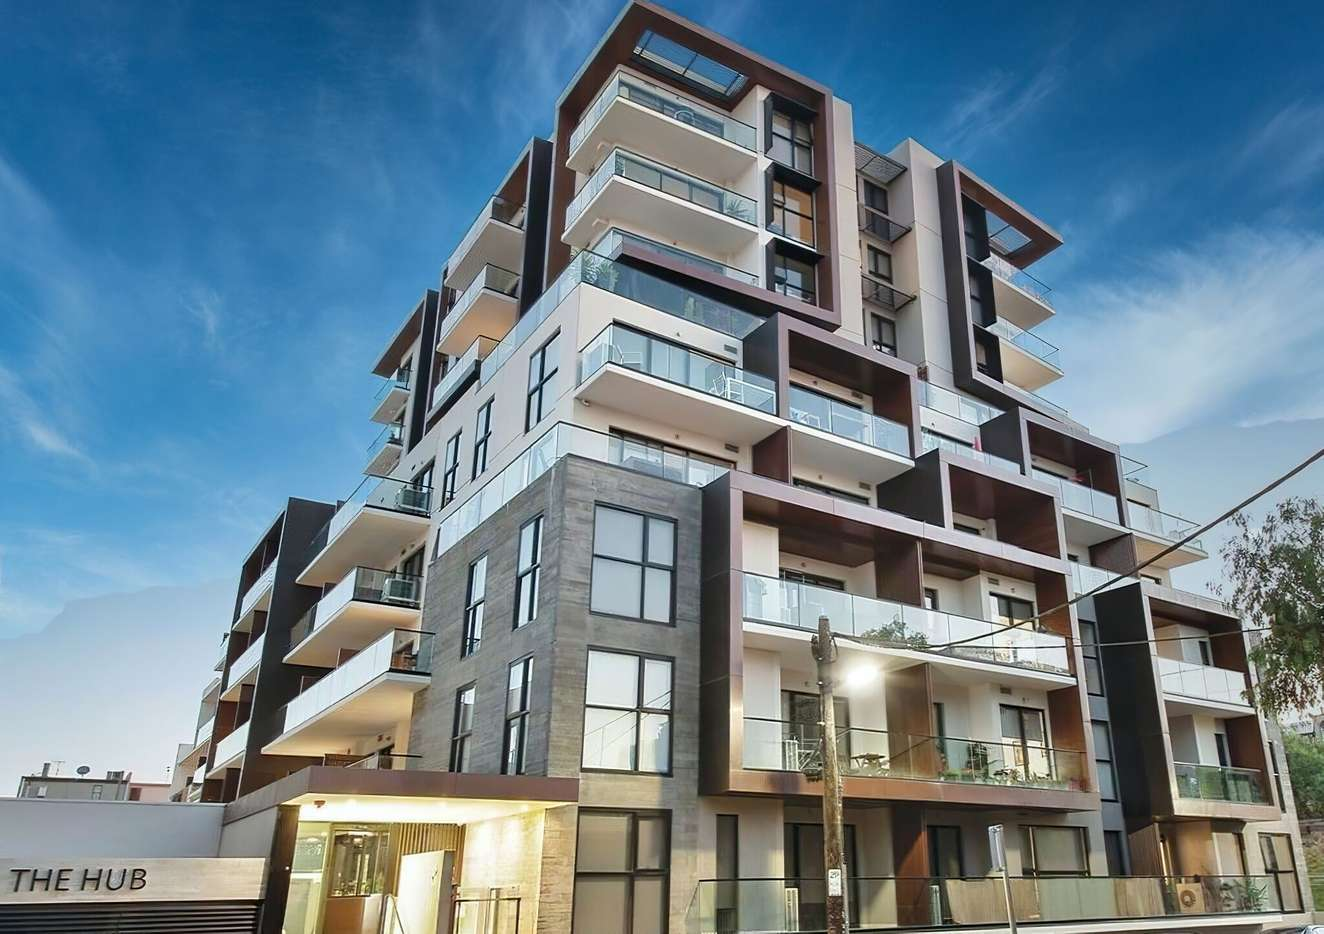 Main view of Homely apartment listing, 503/8 Garfield Street, Richmond, VIC 3121